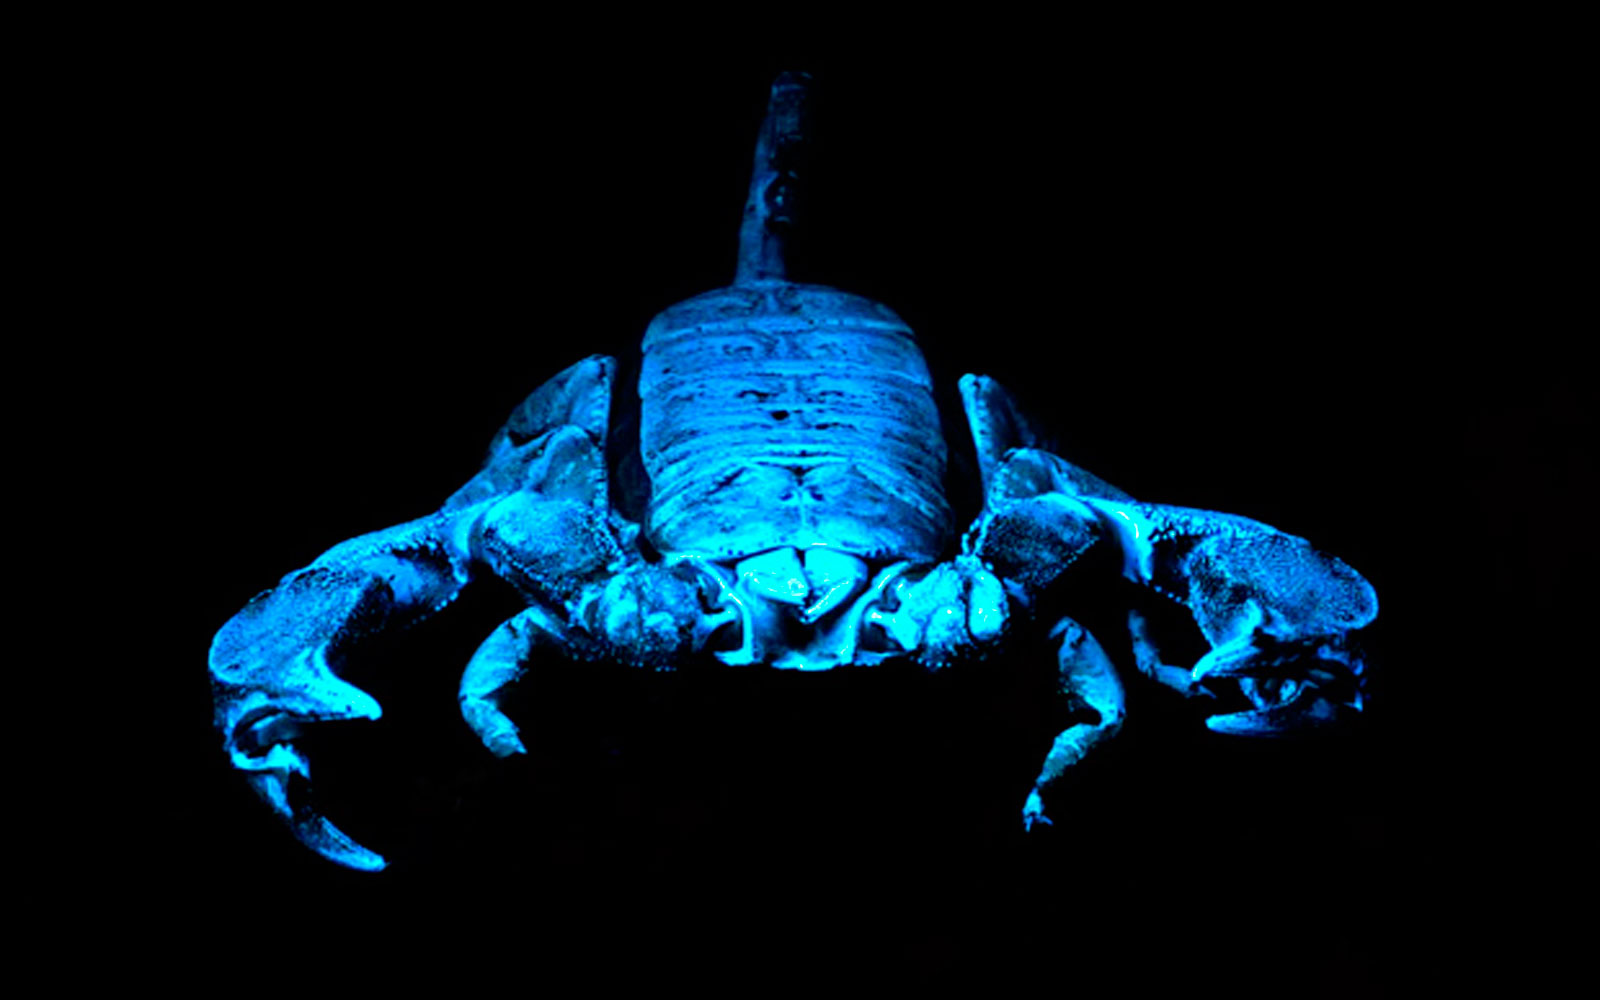 Rock scorpion under ultraviolet light.